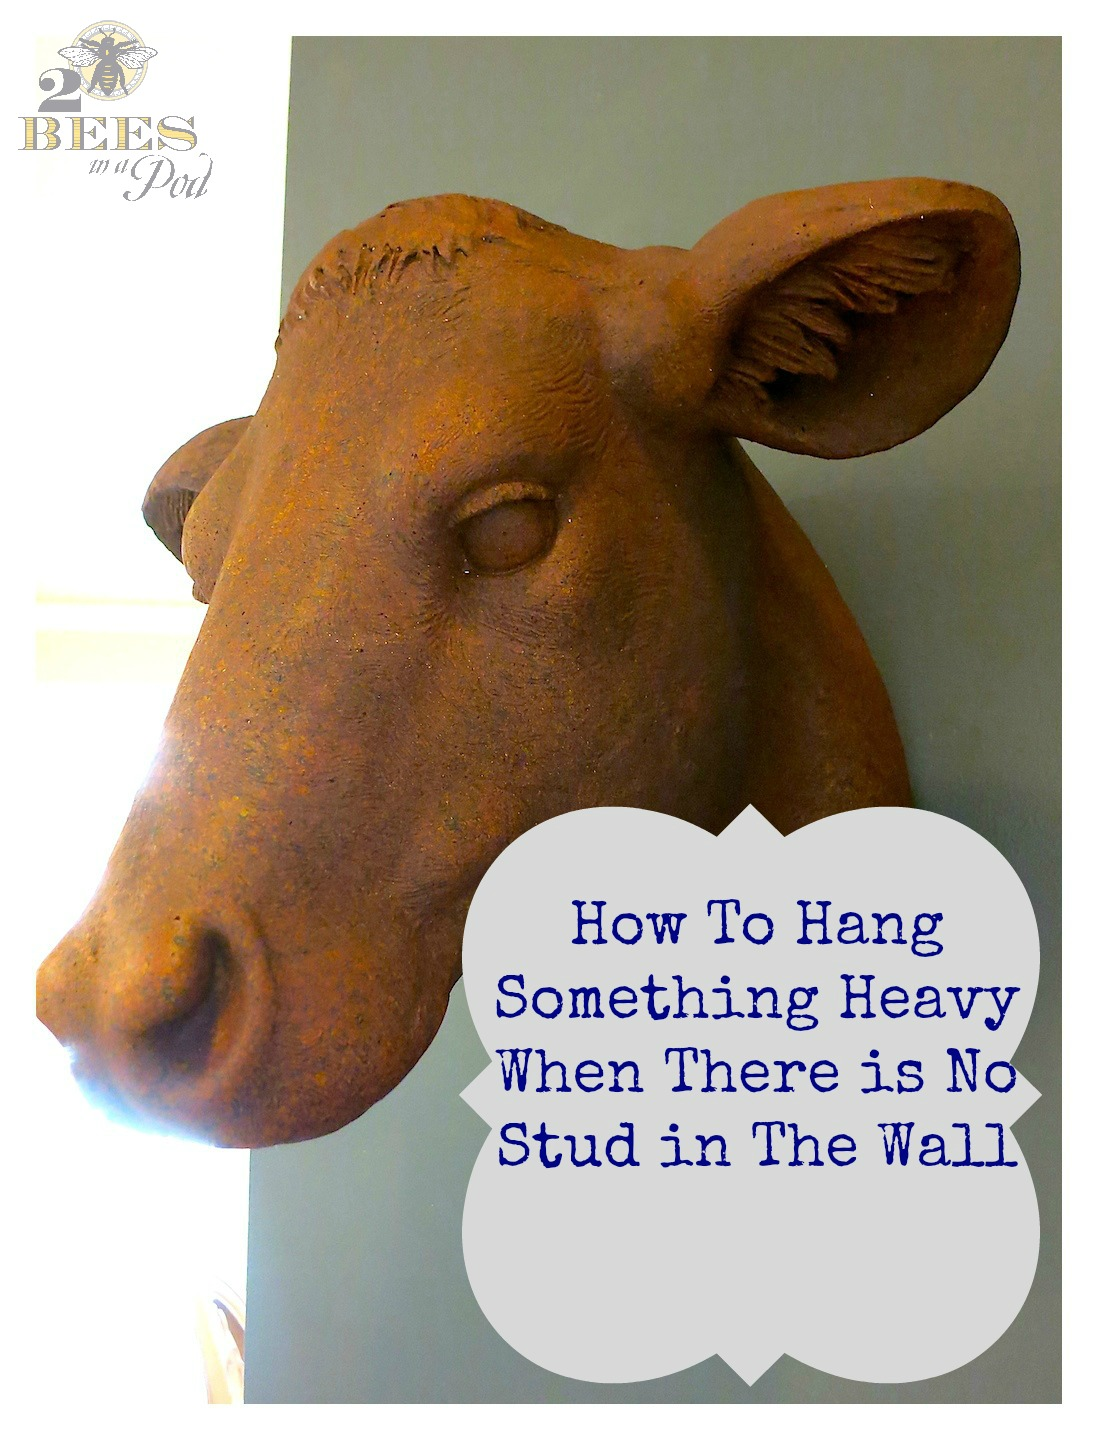 How To Hang Something Heavy When There is No Stud in The Wall. Bessie the cow is a great way to teach this lesson.